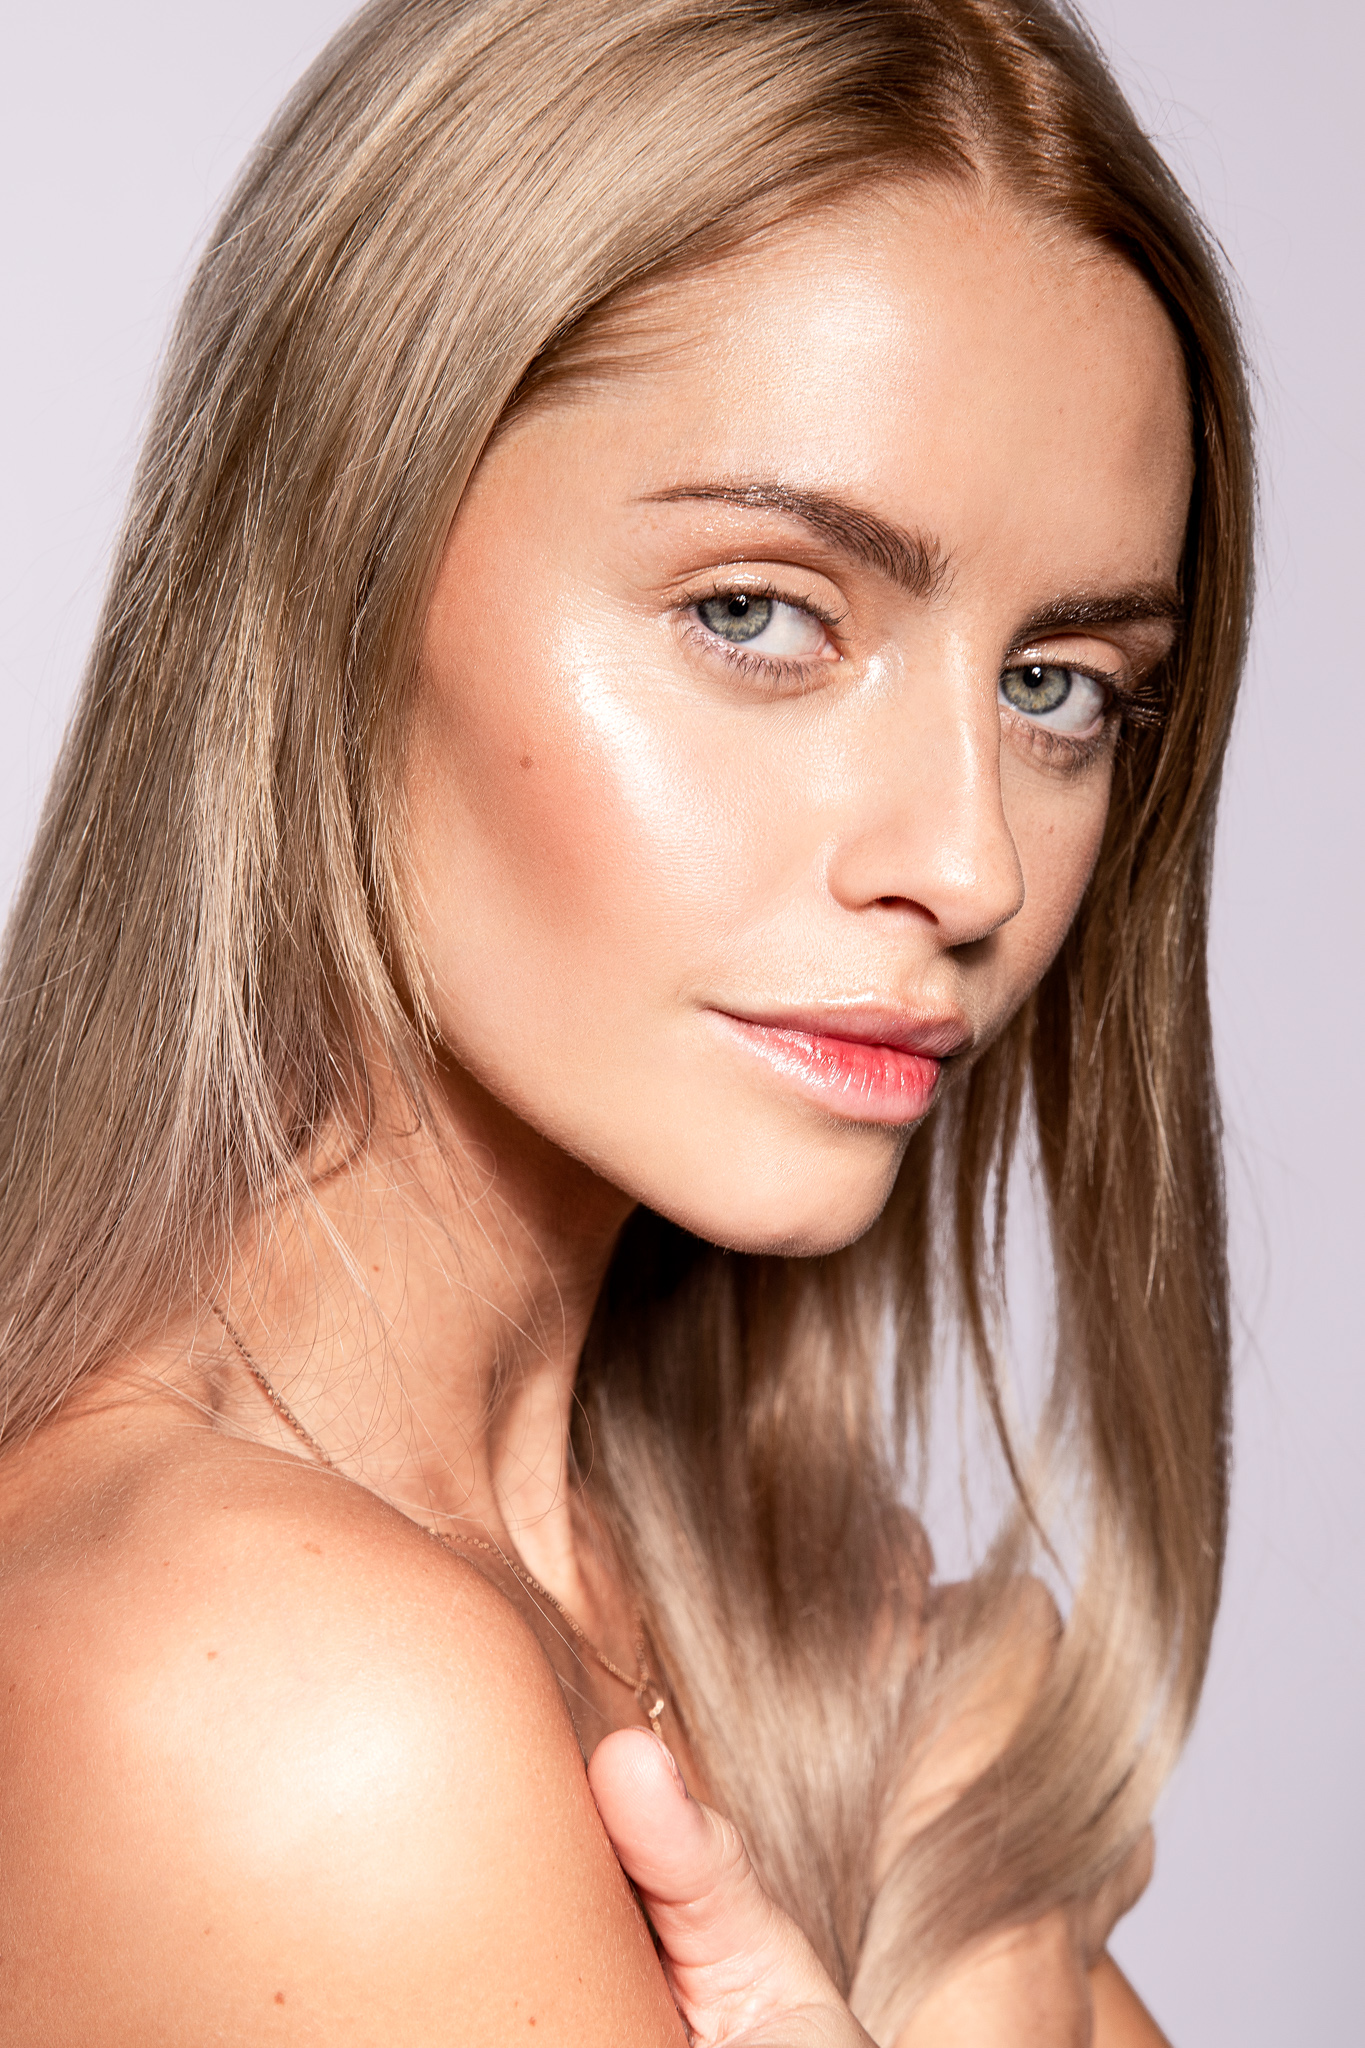 Glowing and healthy face skin